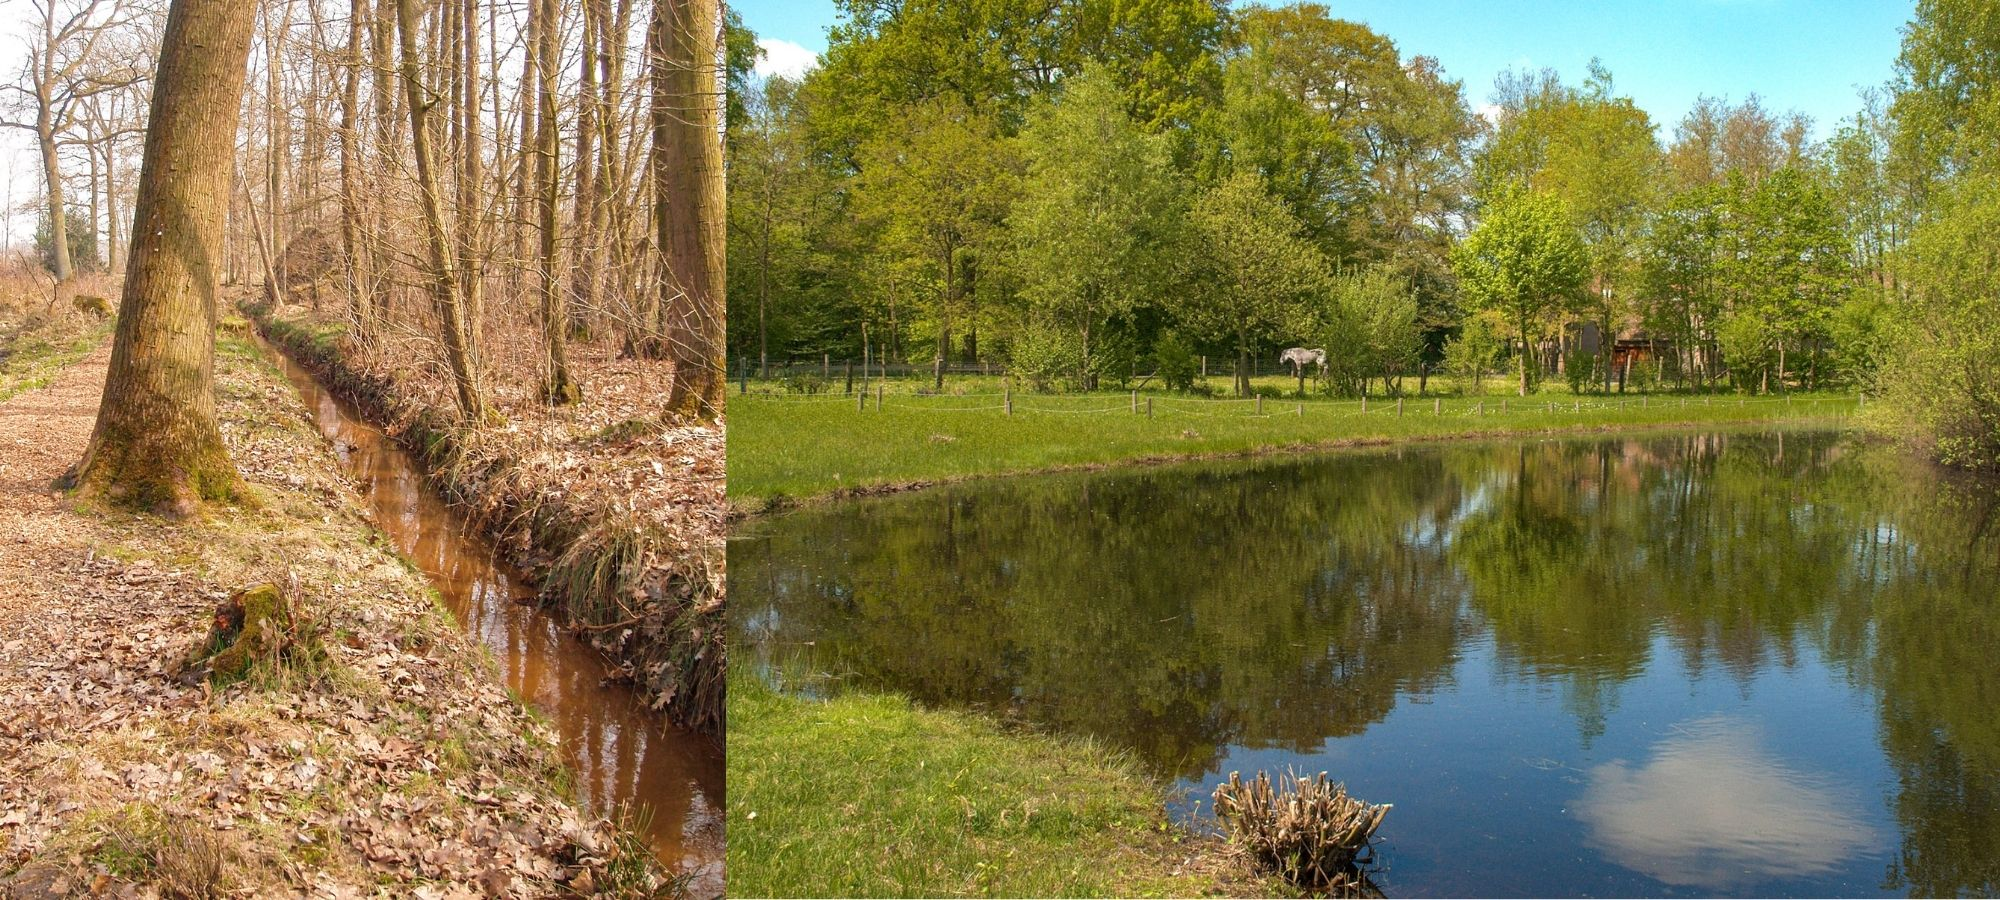 Left: trees next to a narrow river. Right: lake in Domein Kiewit, Belgium